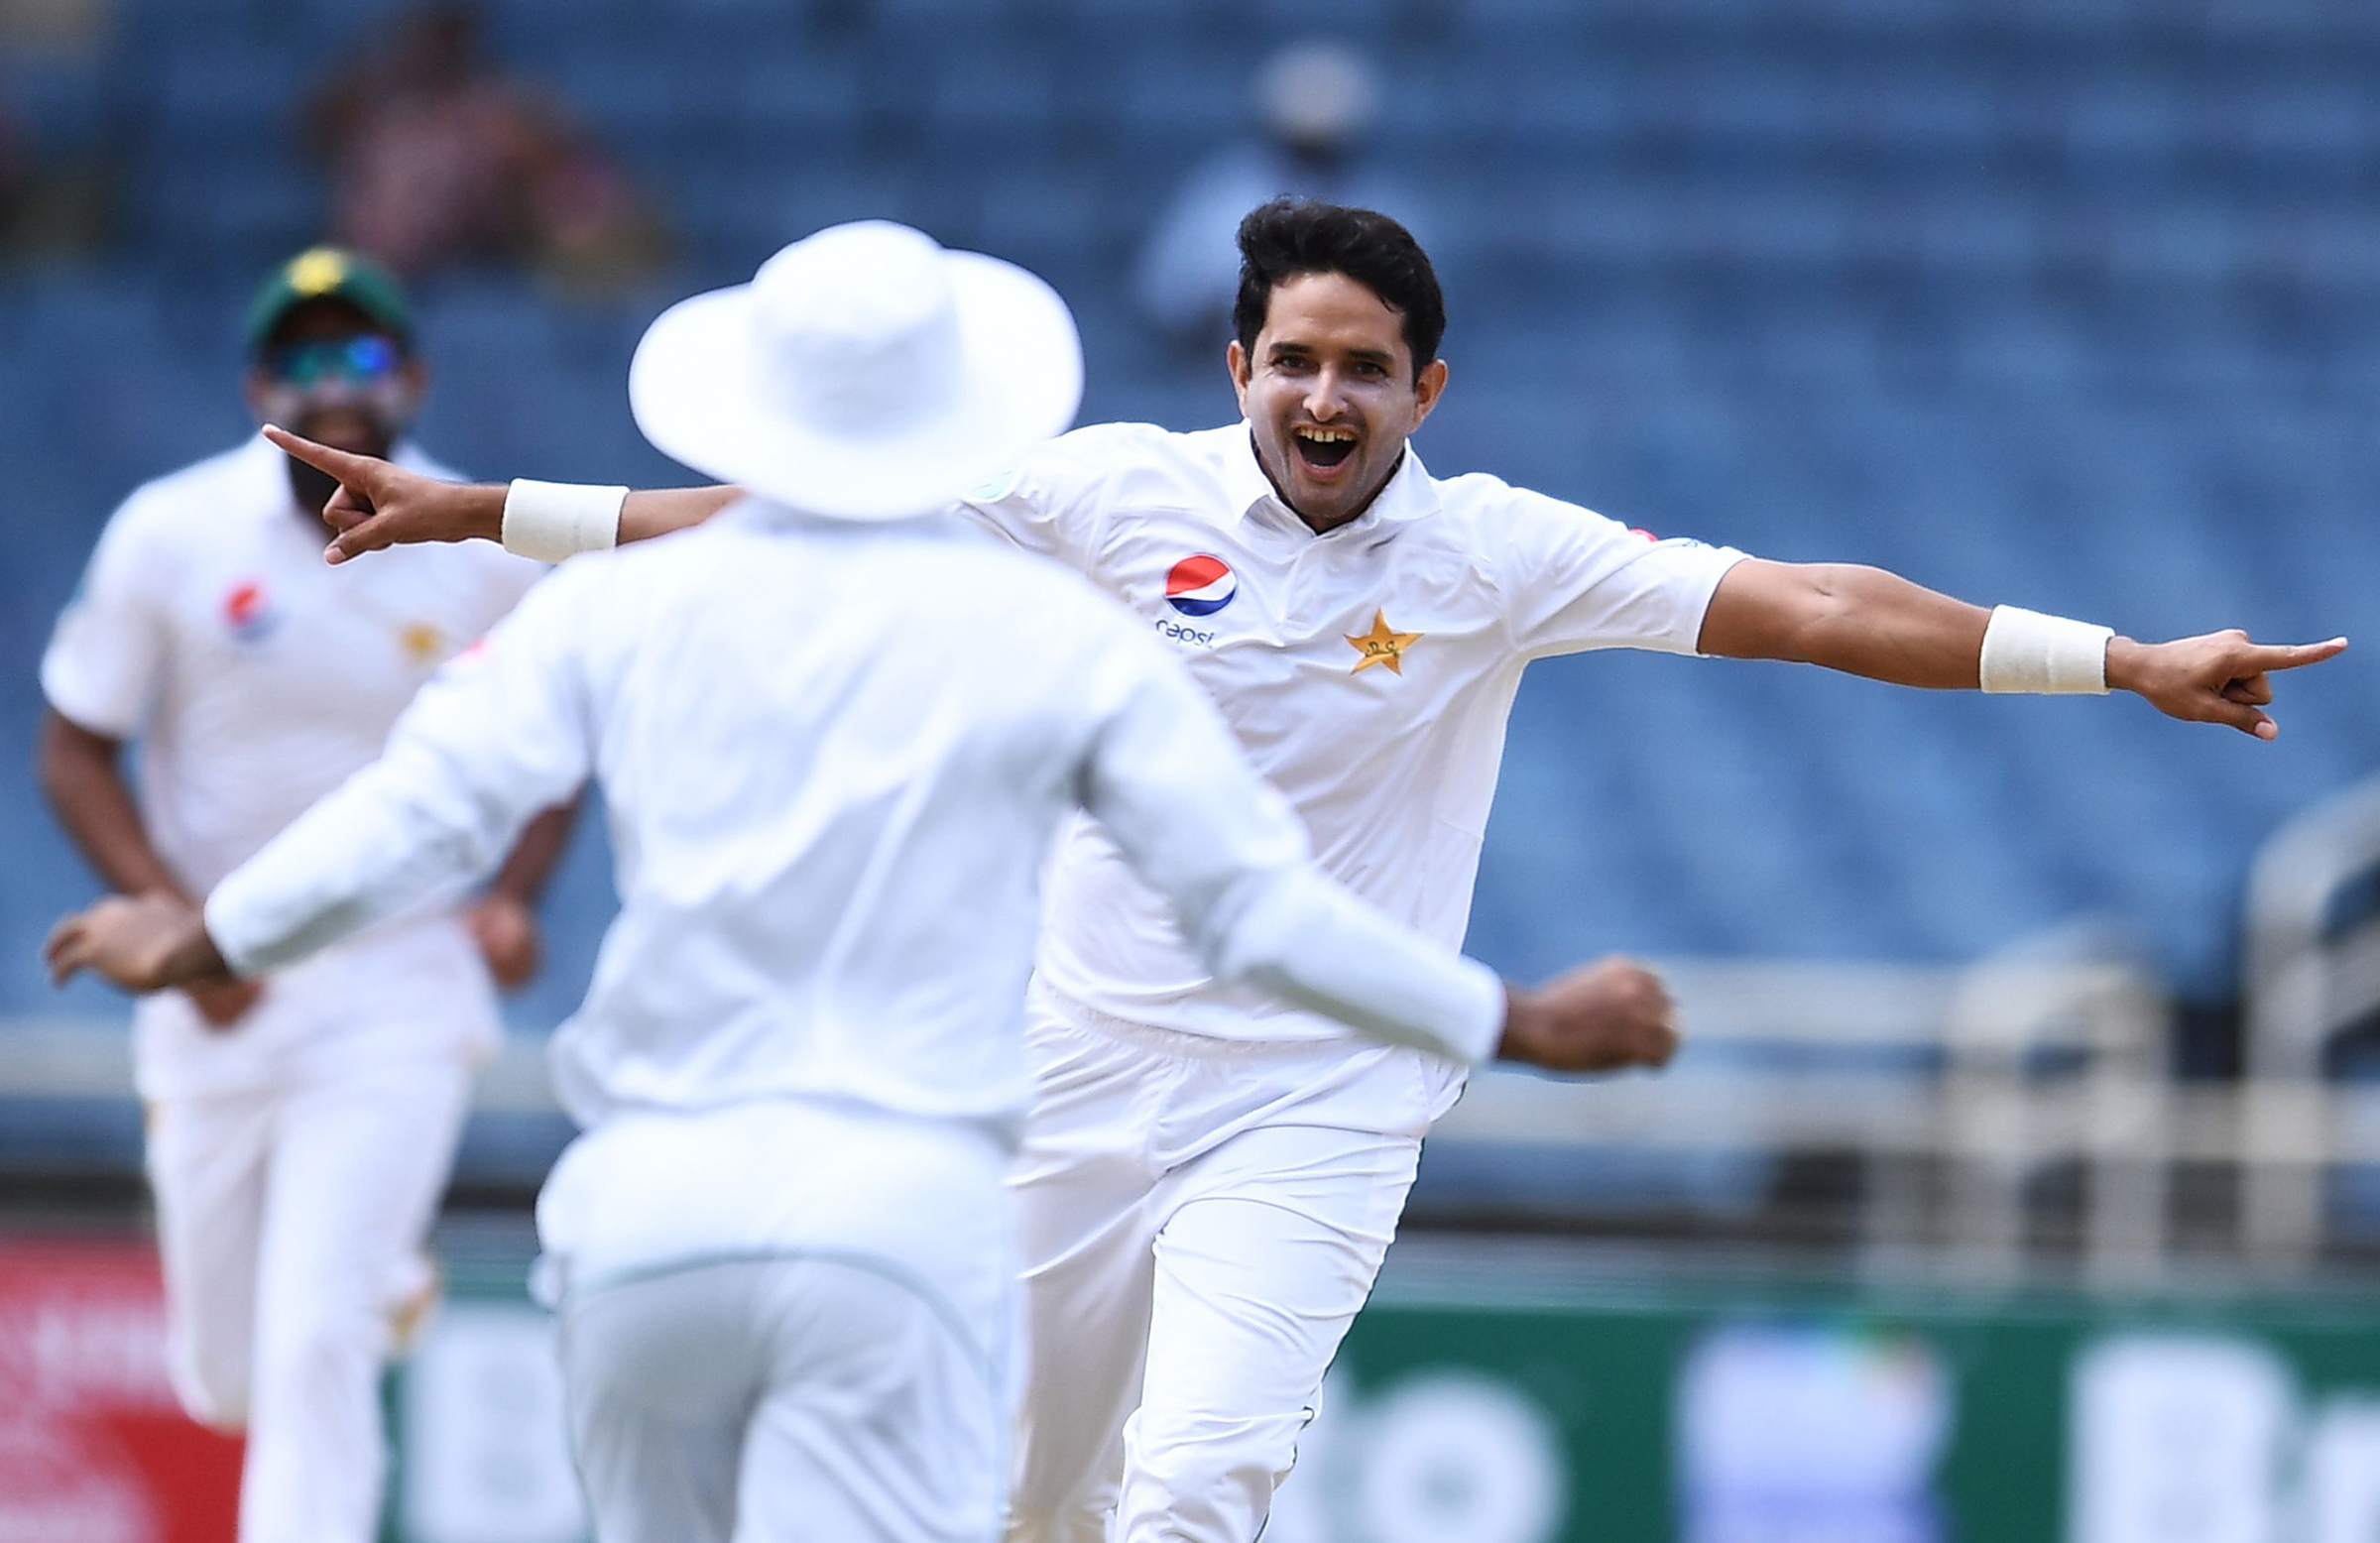 Abbas celebrates a wicket off his second ball in Test cricket // Getty